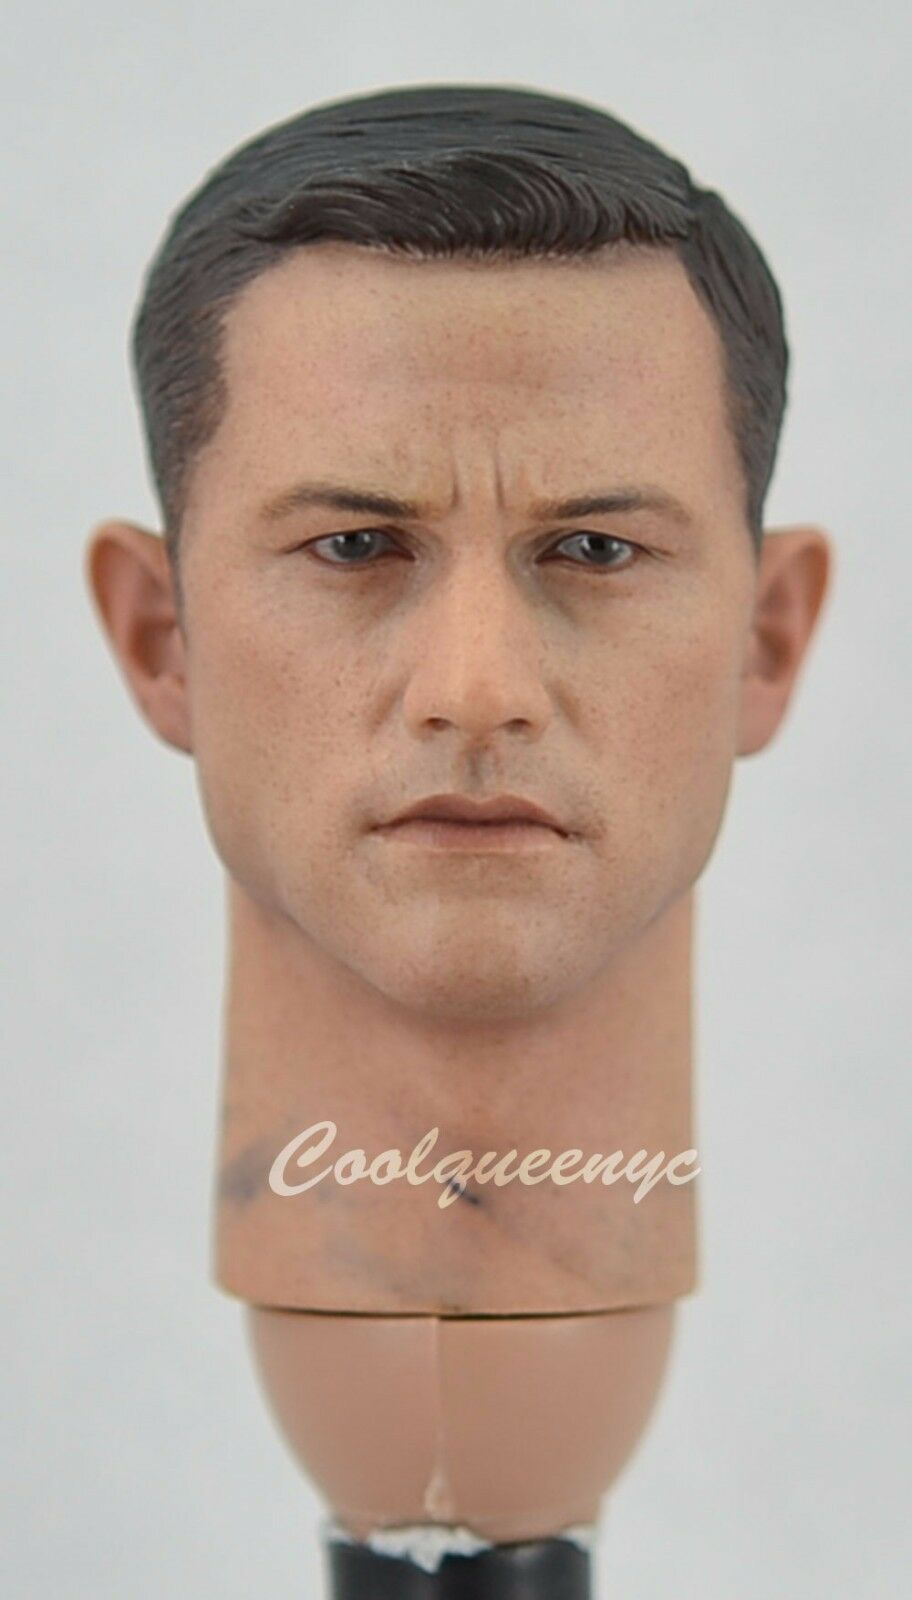 Hot Toys 1/6 Scale MMS275 The Dark Knight Rises John Blake Figure - Head sculpt